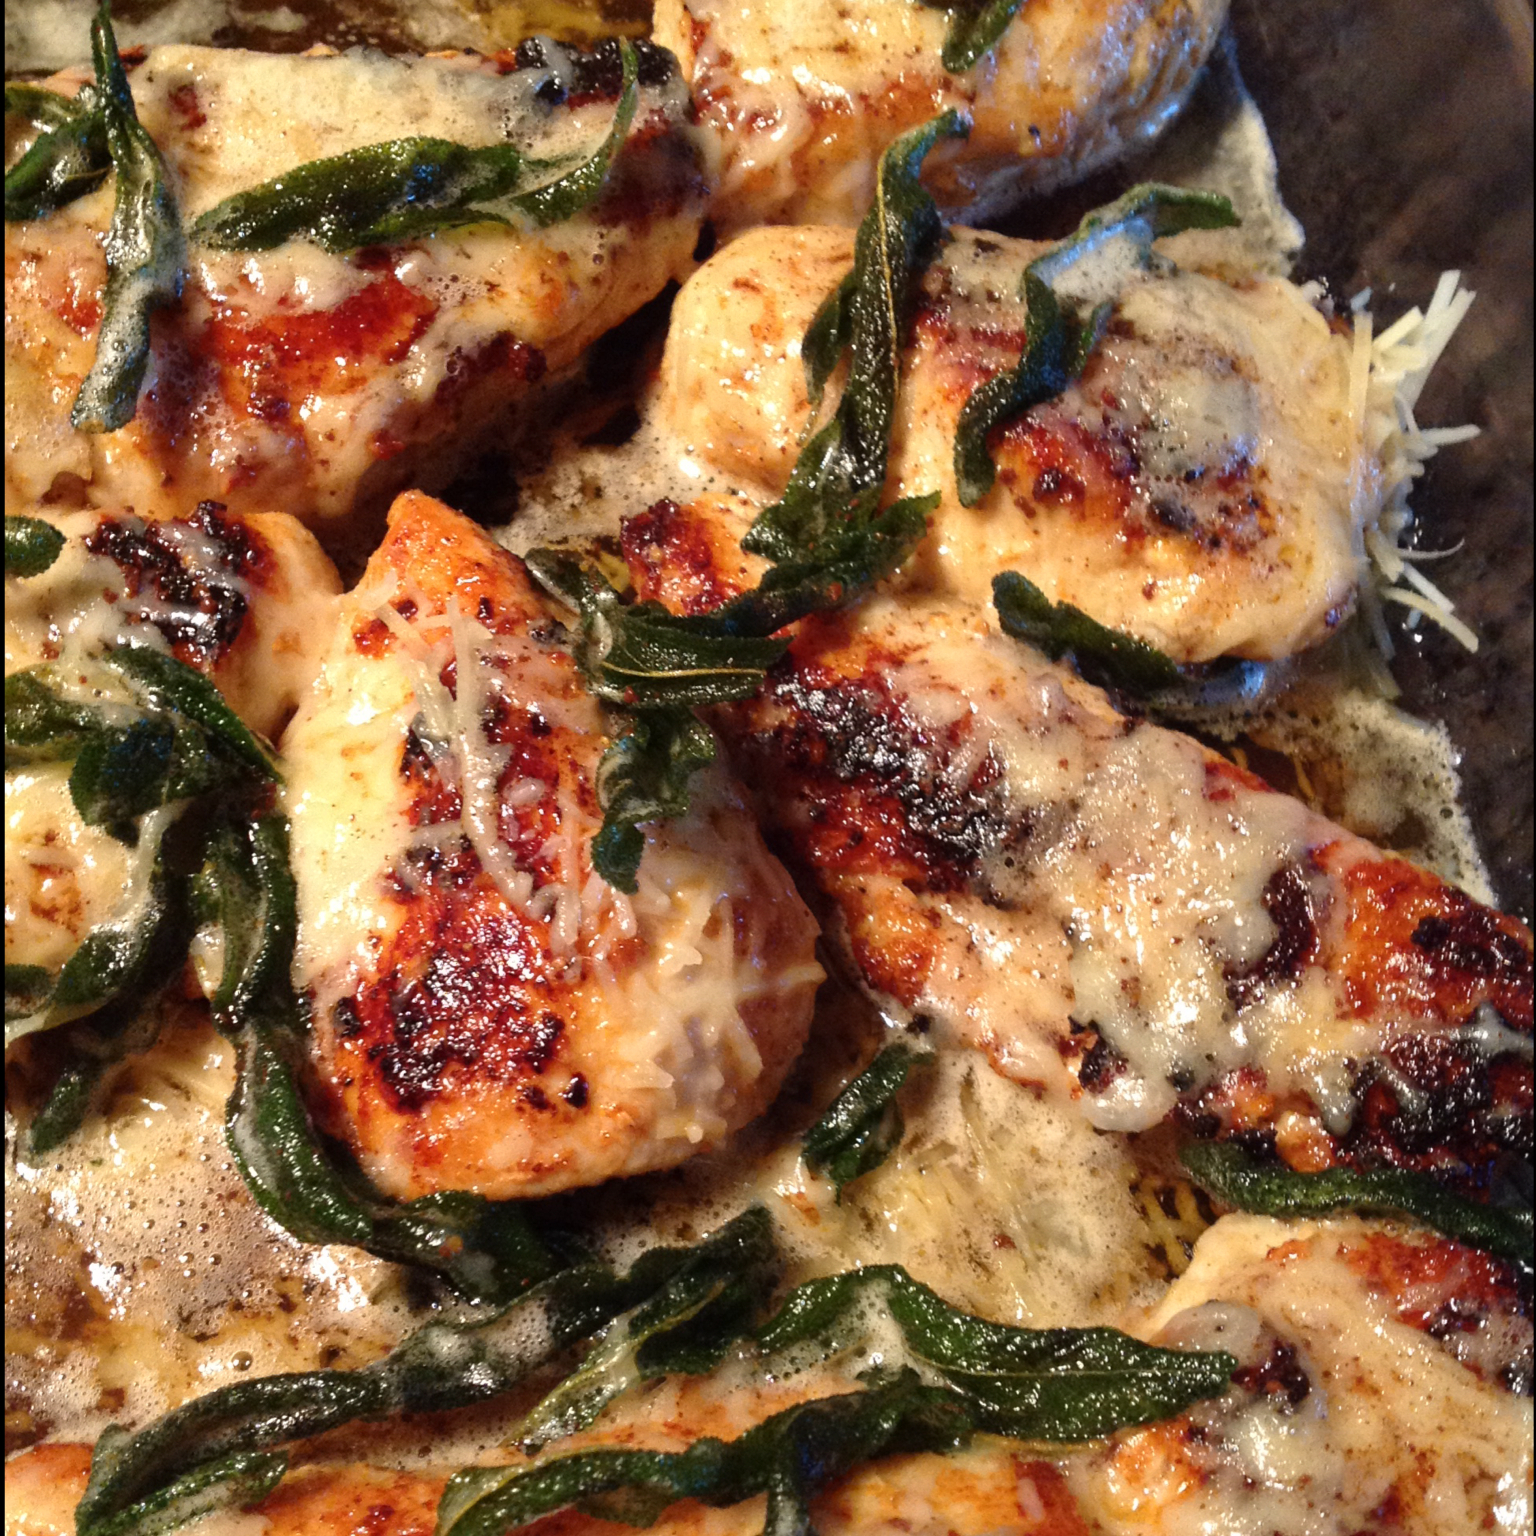 ... Main Dish Poultry - Chicken Chicken in Browned Butter Sage Sauce